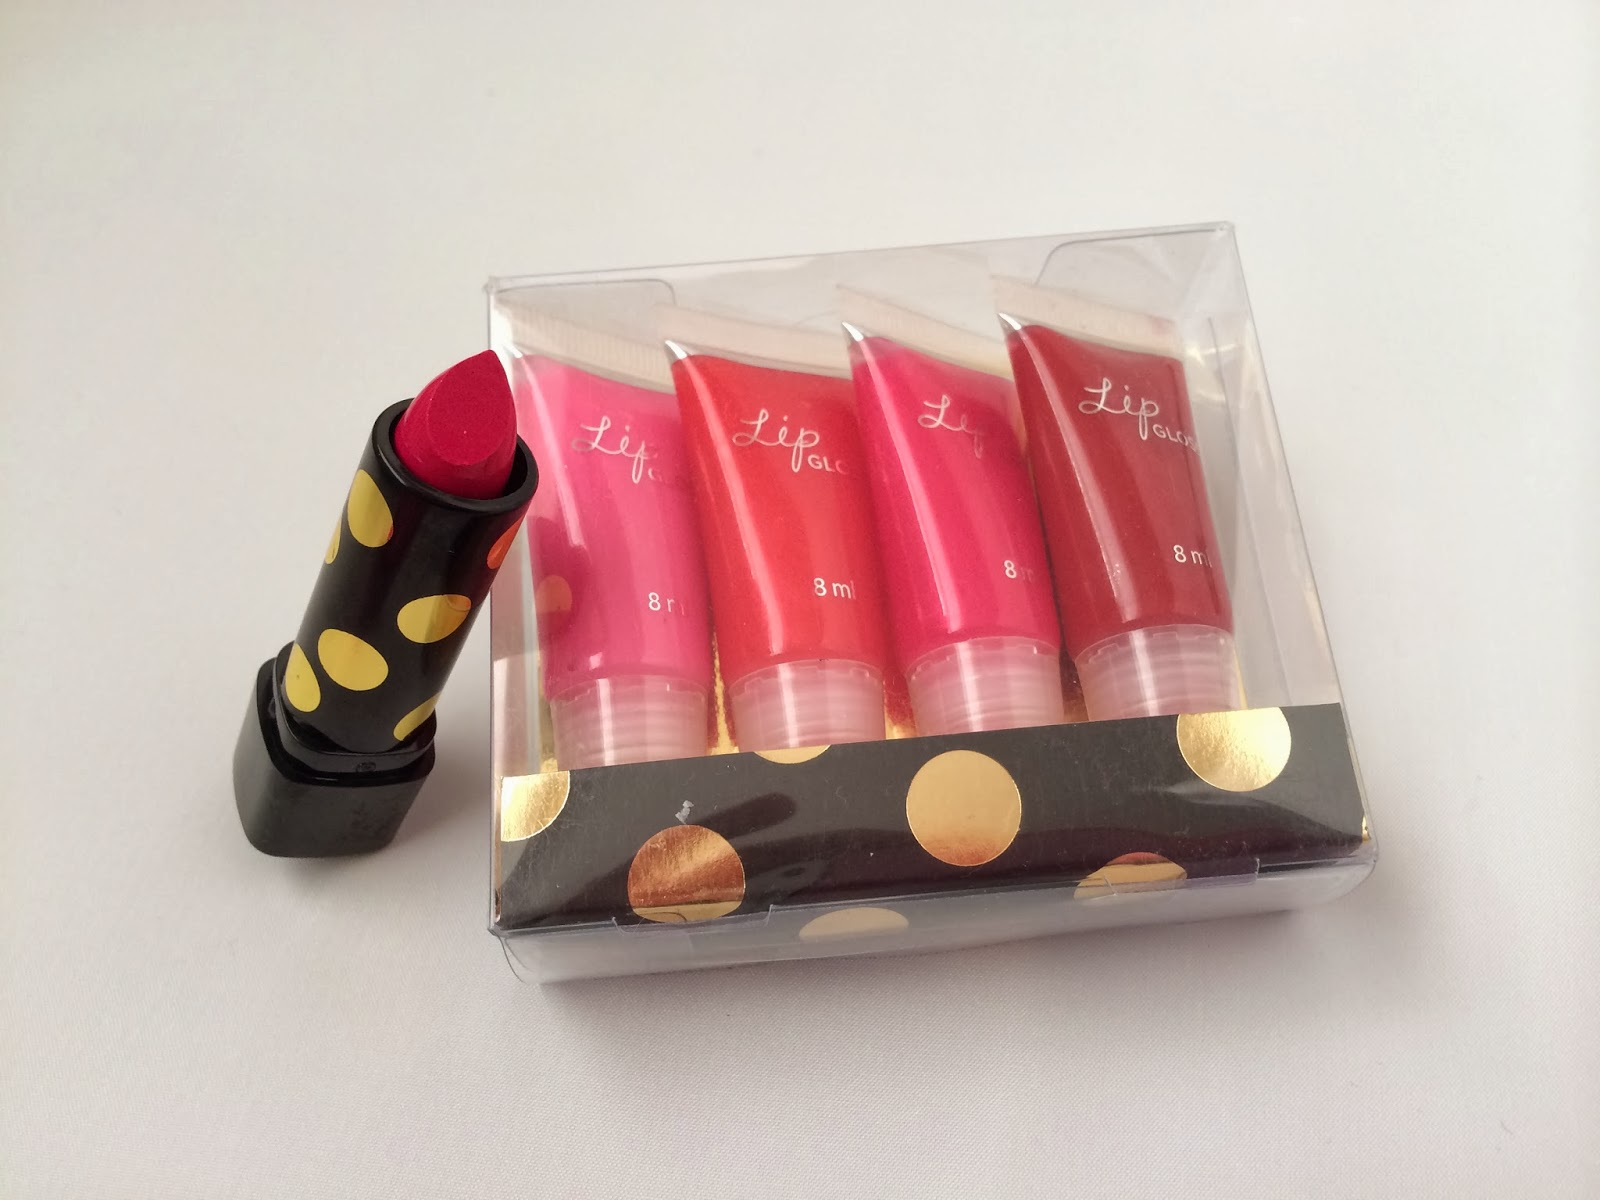 lip gloss research paper Get the perfect pucker and pout with our lip gloss and lip plumper shop glitter, nude, red and more lip stains and lipsticks, only at victoria's secret.